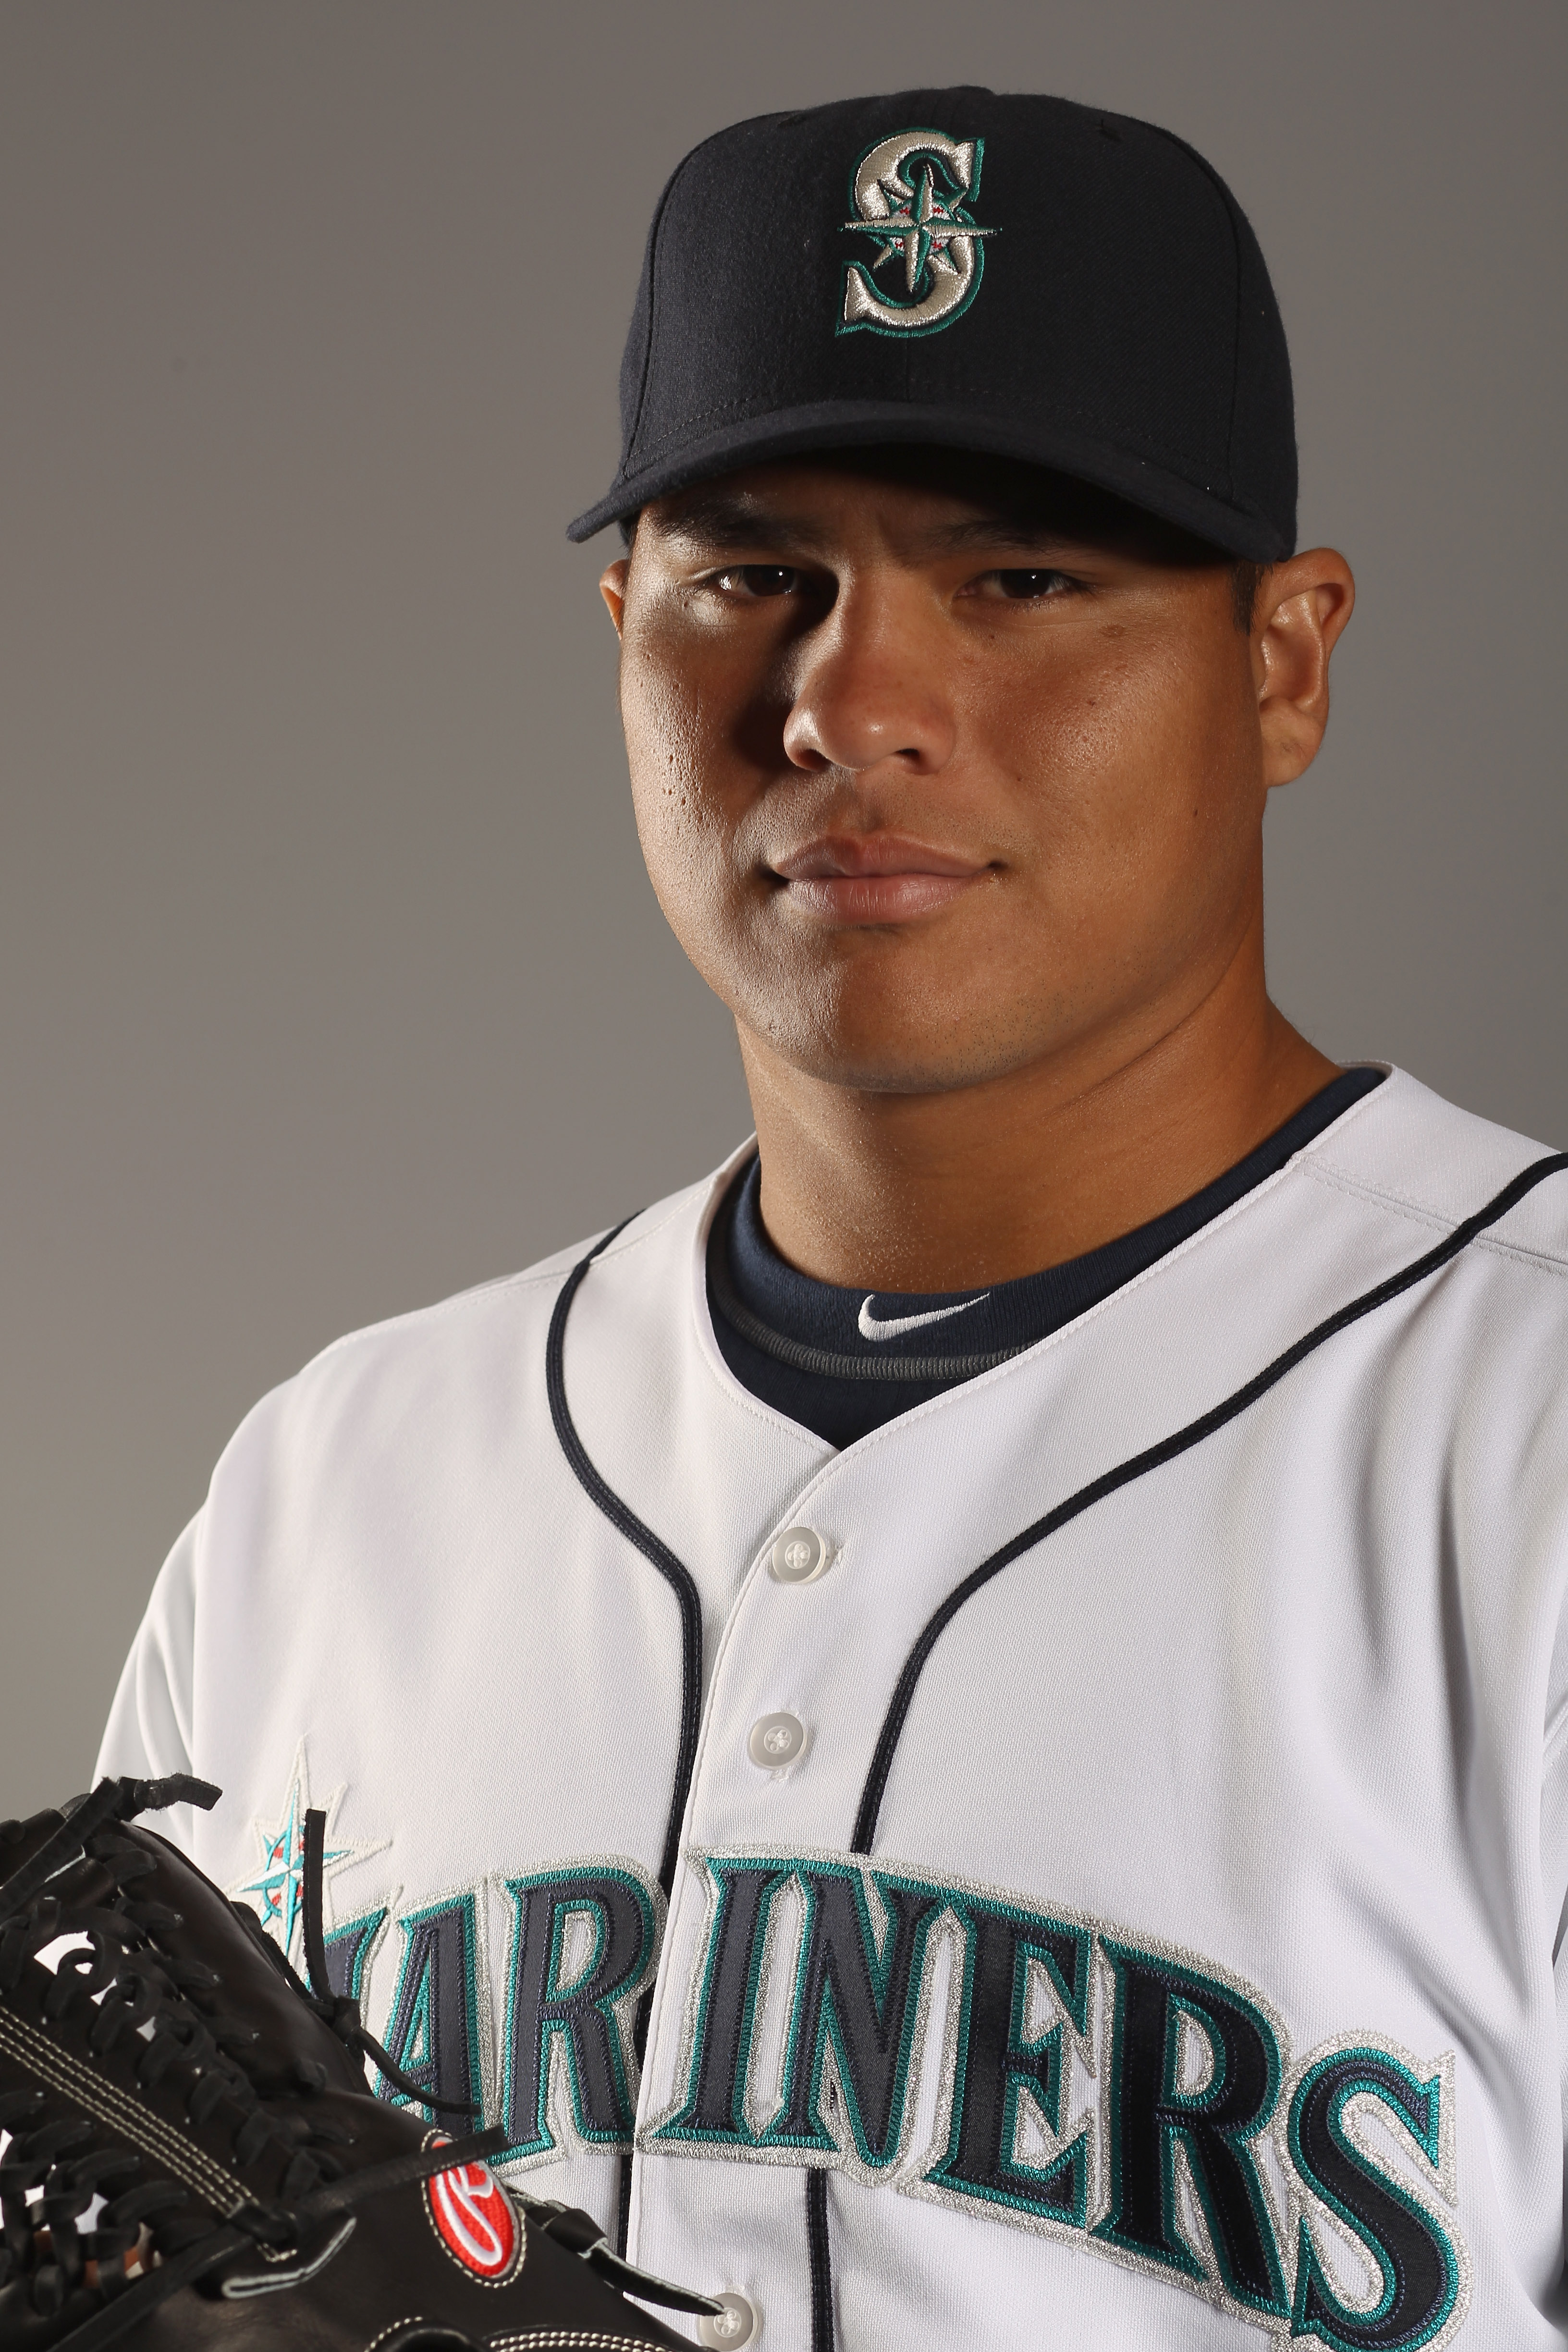 PEORIA, AZ - FEBRUARY 20:  Jose Flores #69 of the Seattle Mariners poses for a portrait at the Peoria Sports Complex on February 20, 2011 in Peoria, Arizona.  (Photo by Ezra Shaw/Getty Images)